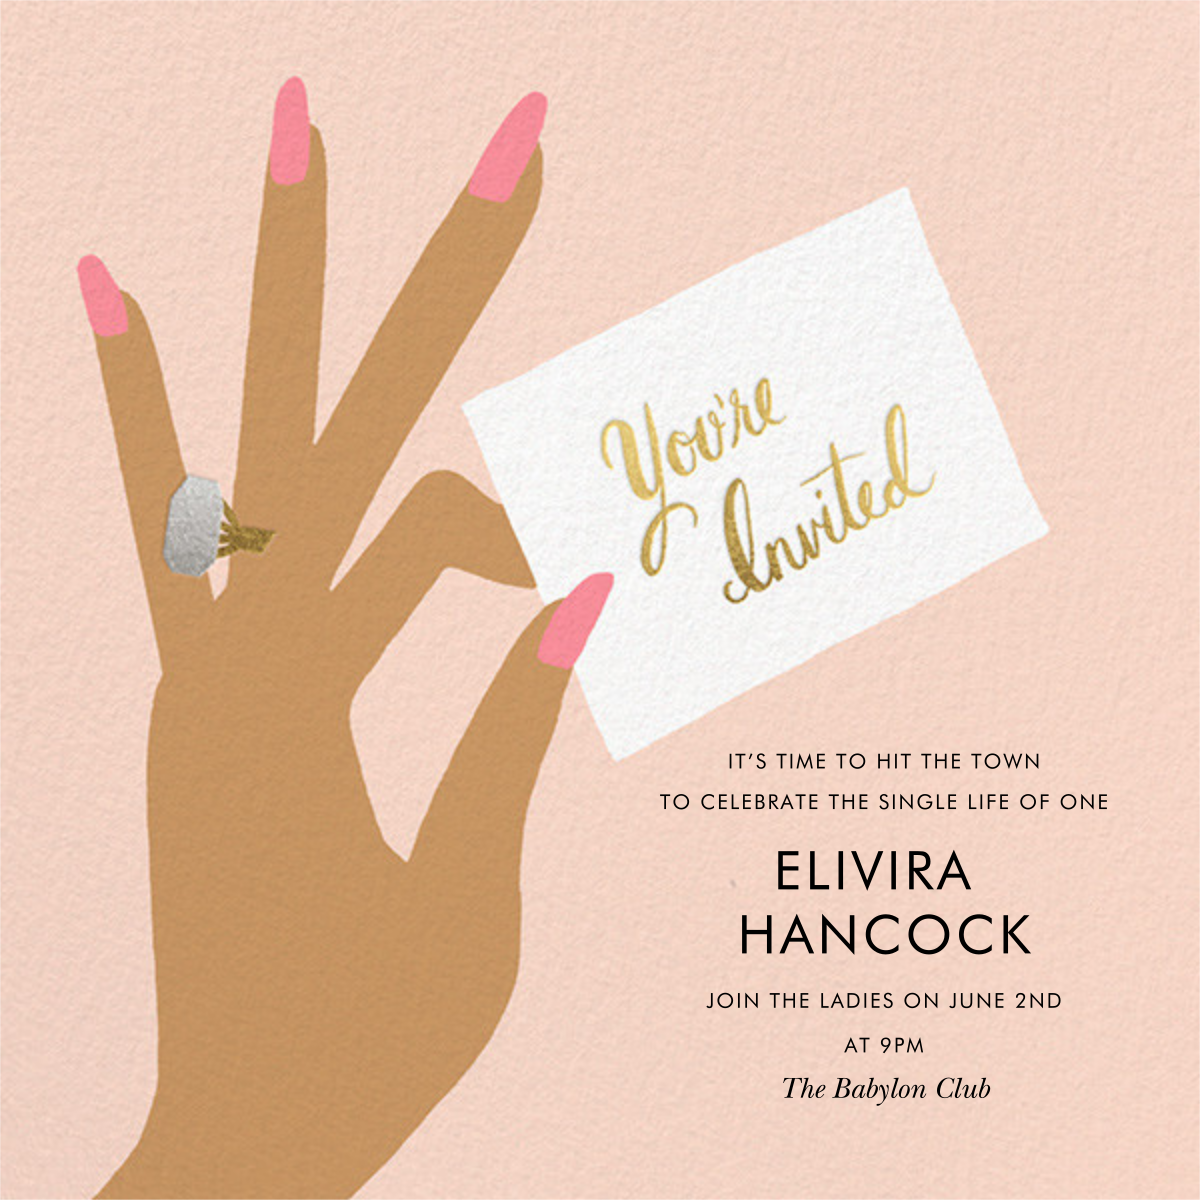 You're Invited Ring - Pink - Rifle Paper Co. - Bachelorette party